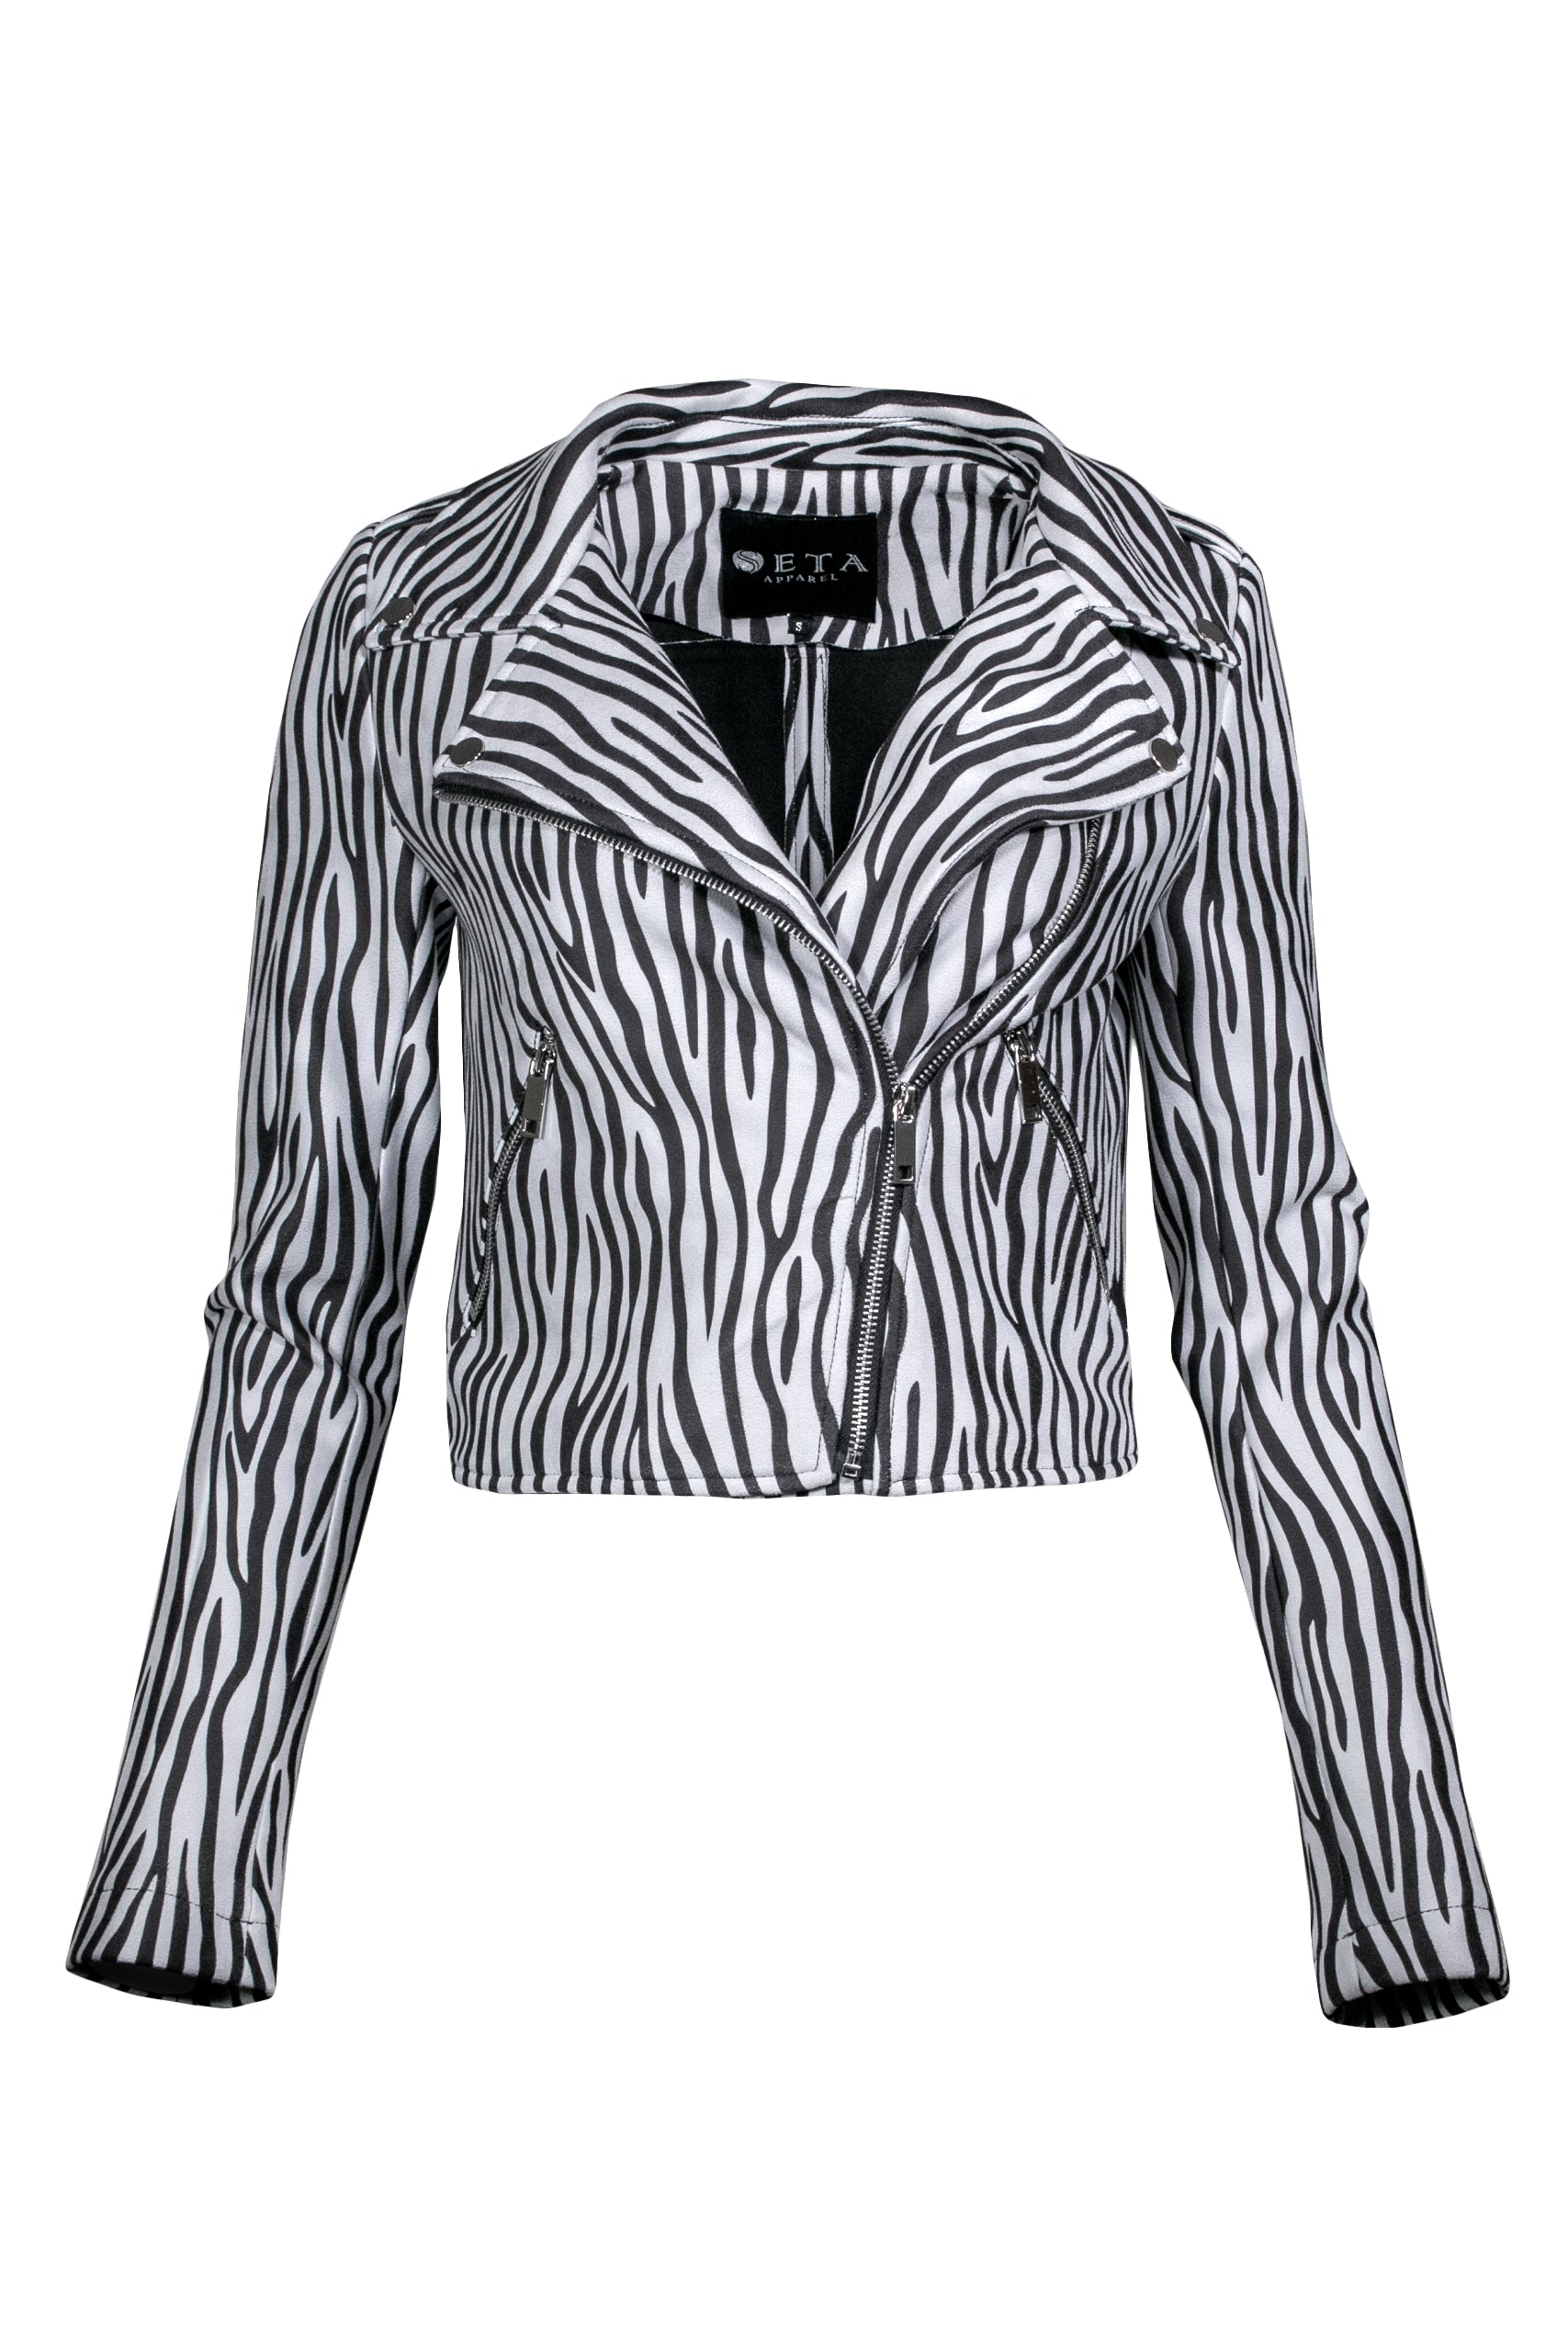 ZEBRA MOTORCYCLE JACKET